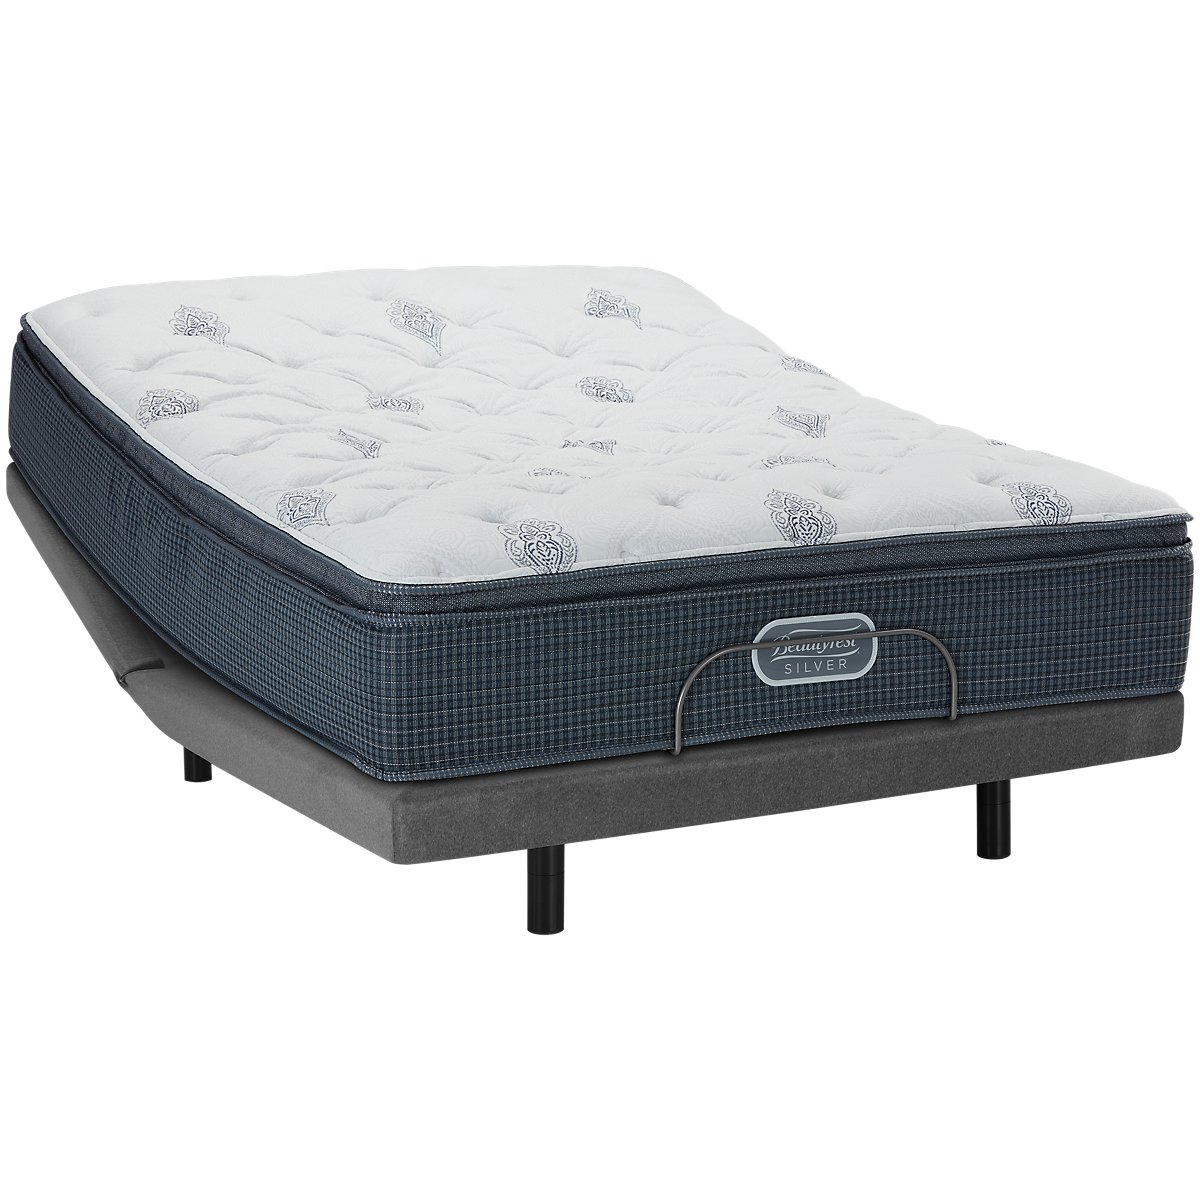 City Furniture Palm Springs Plush Elite Adjustable Mattress Set